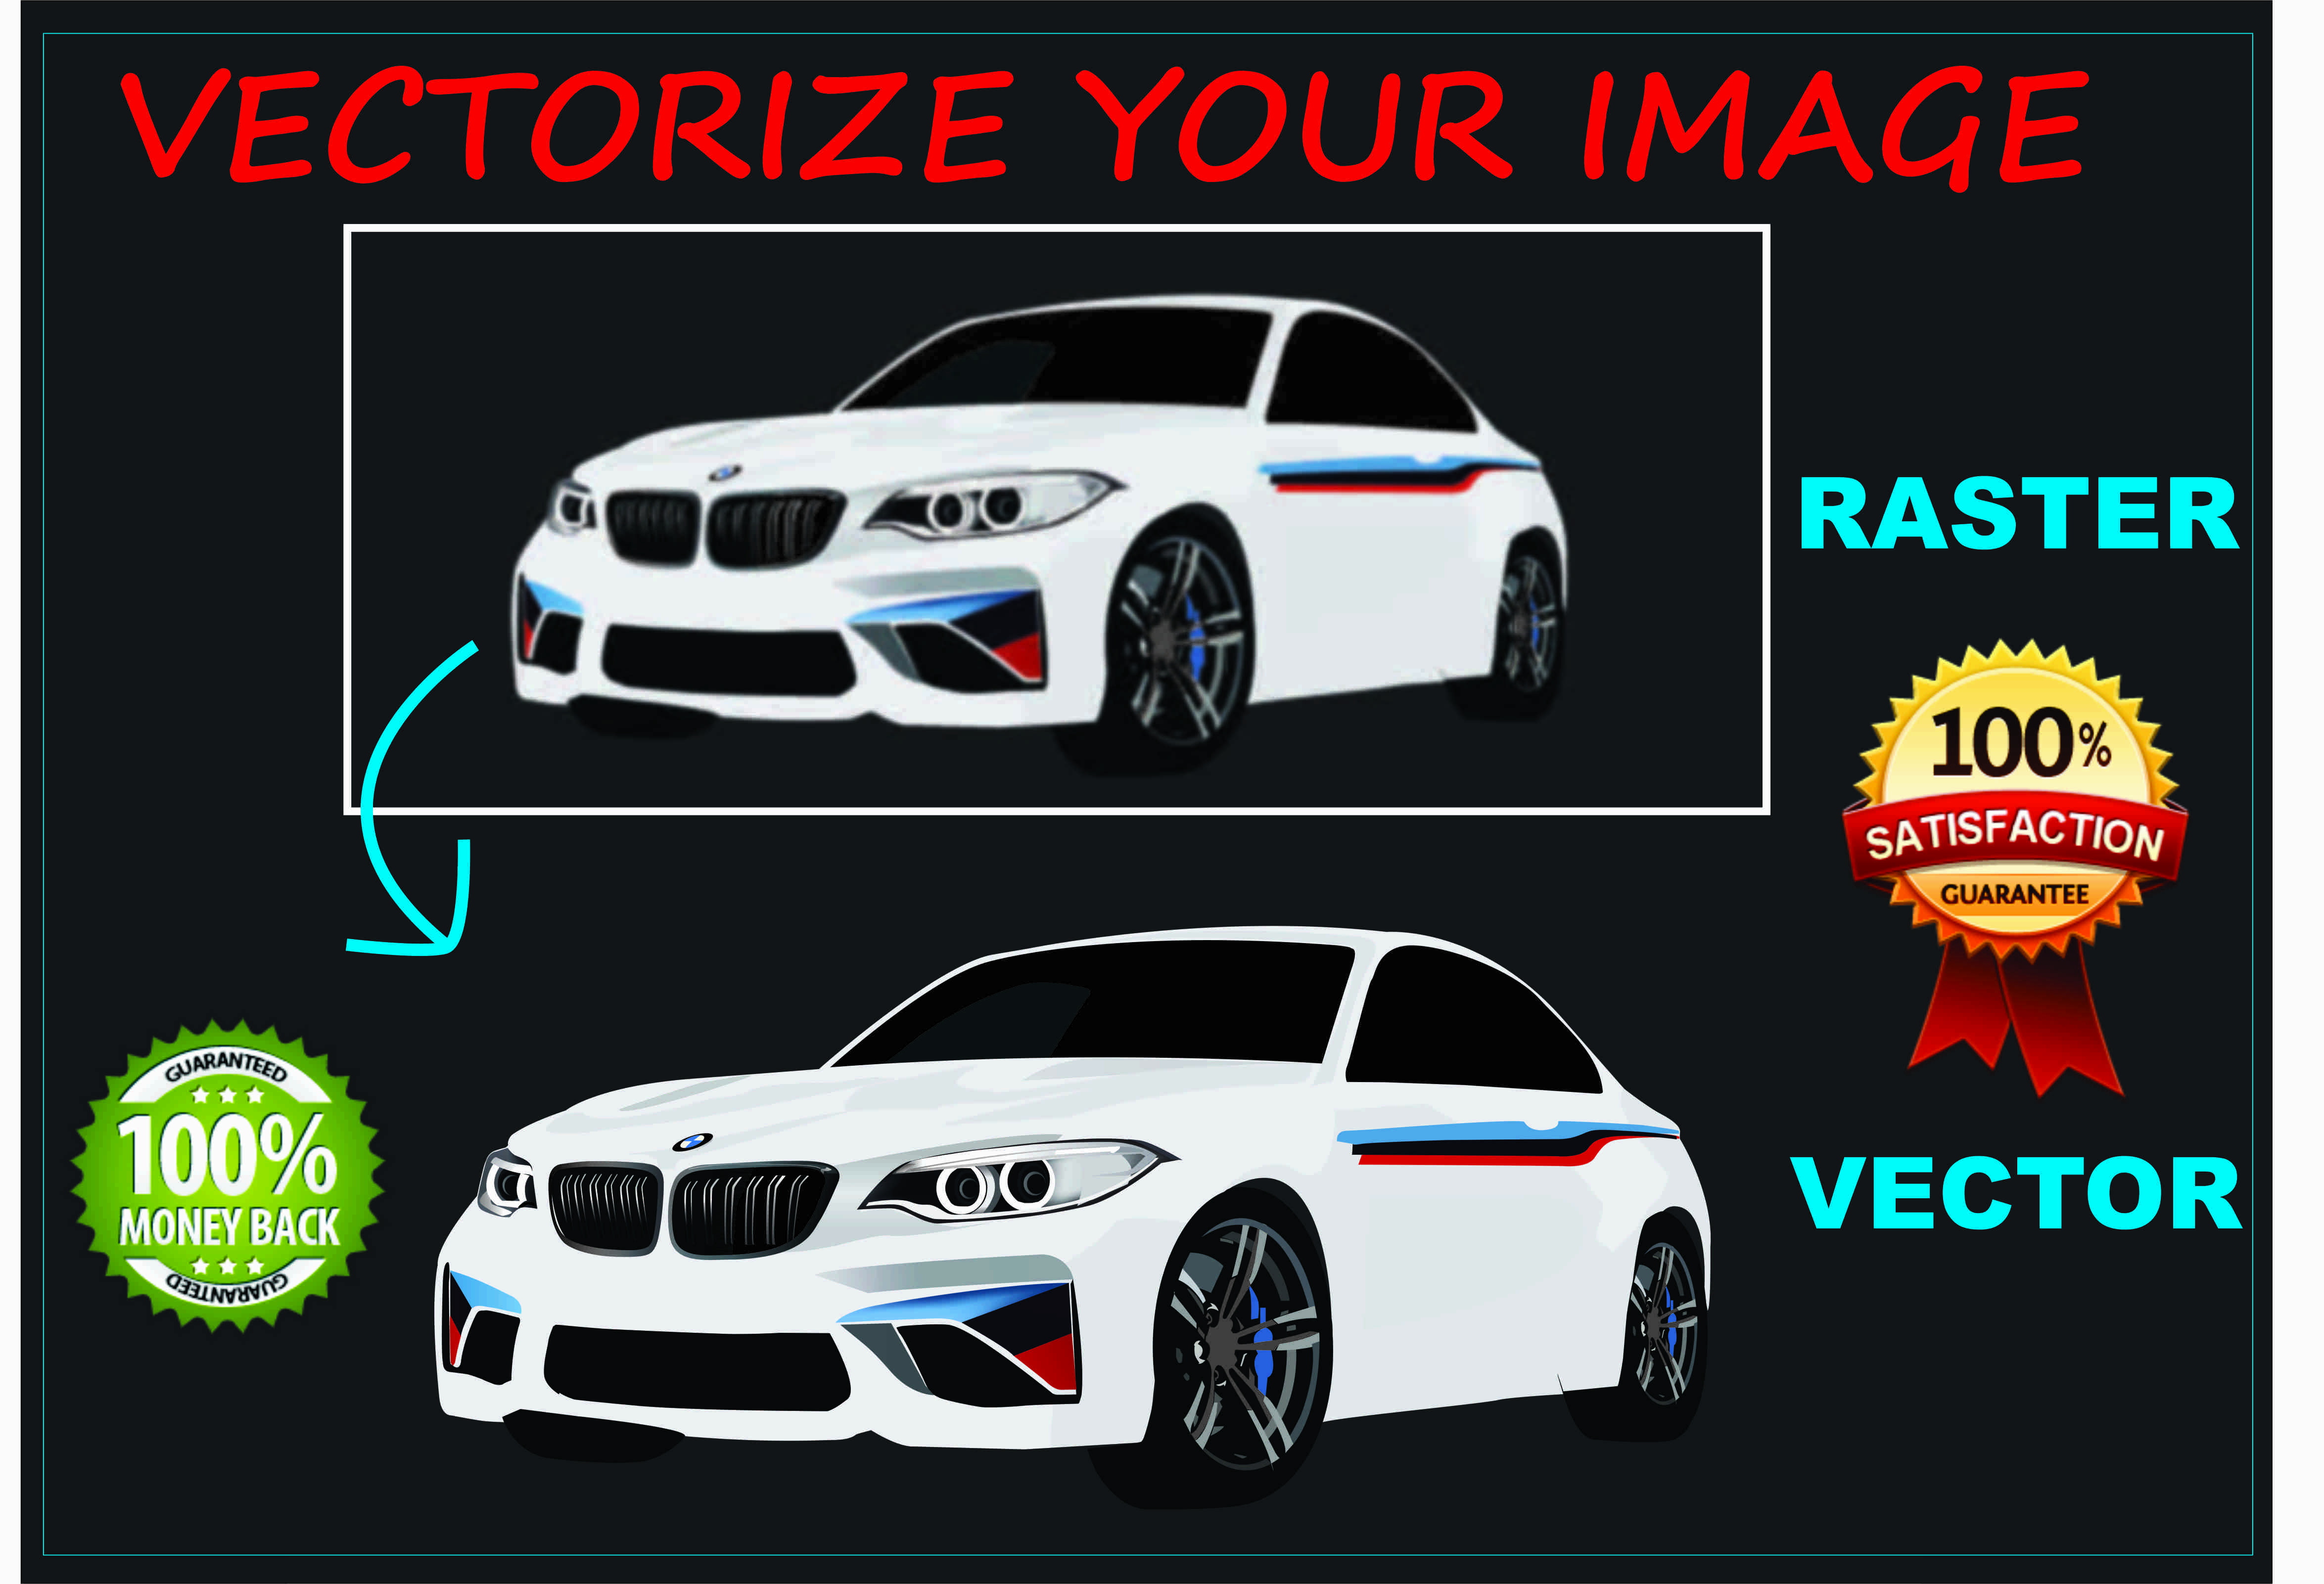 Vectorize your image or logo within 24 hours